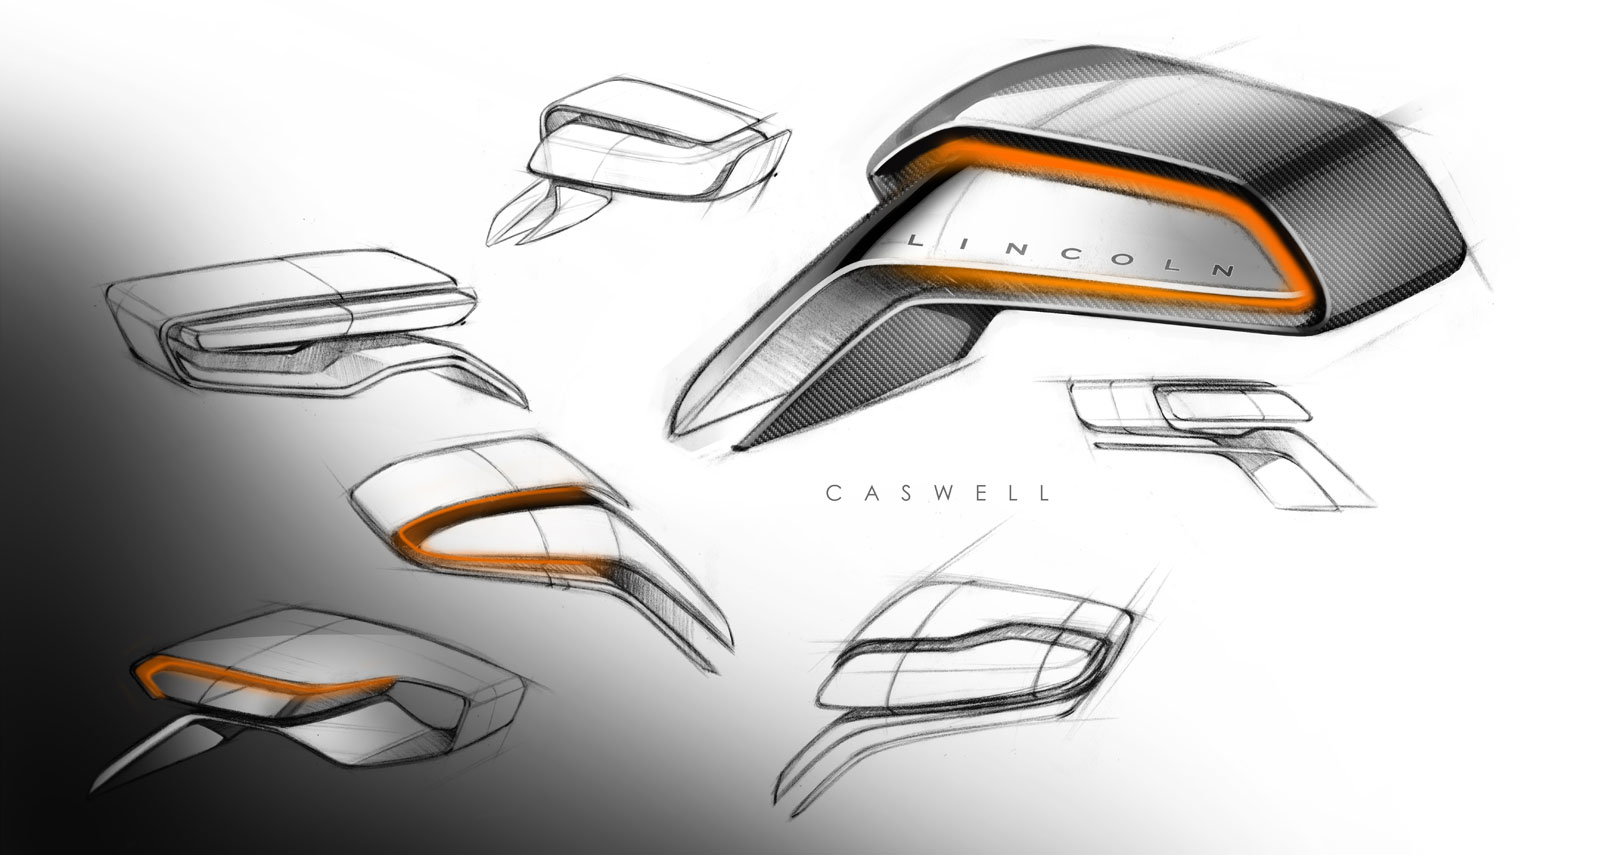 Lincoln Mkx Concept Sideview Mirror Ideation Design Sketches Car Body Design